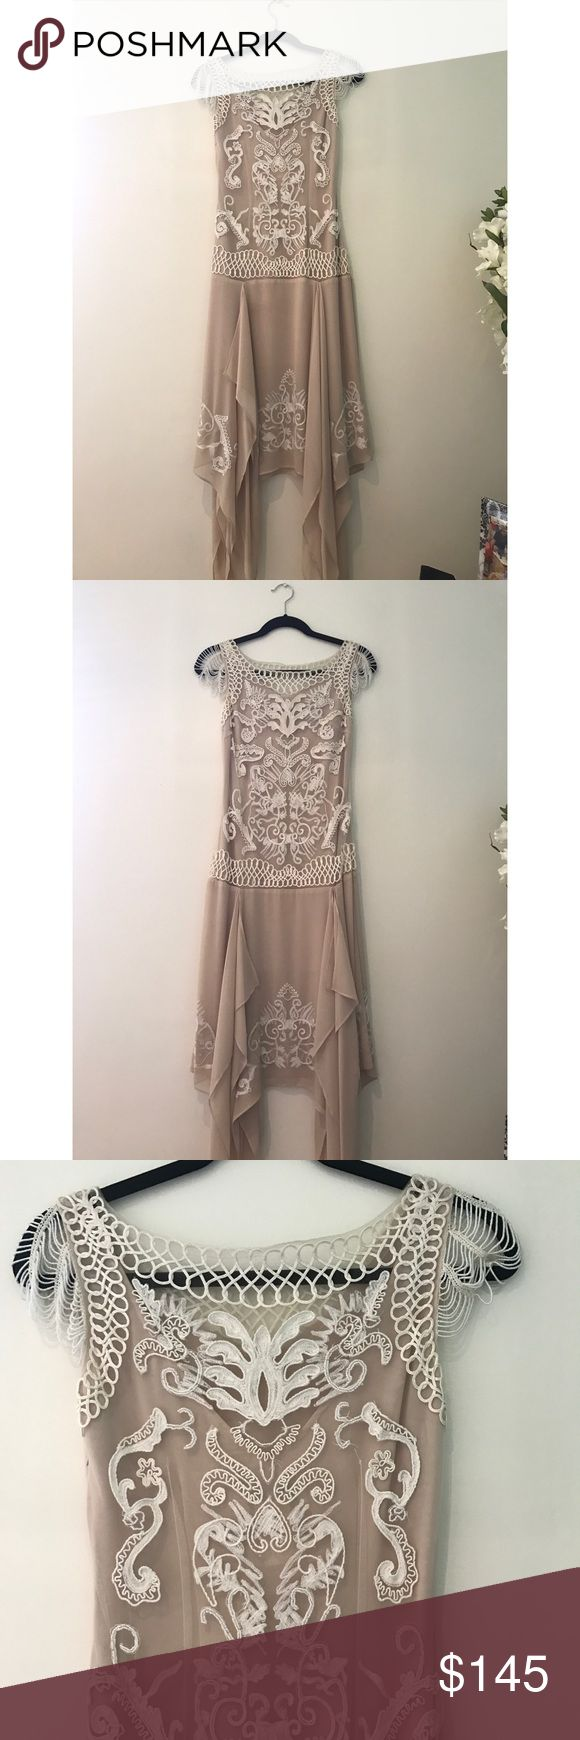 Sue Wong Antique Beaded Mesh Dress Sue Wong Nocturne Dress in Champagne -  Size: 2 Antique Dress Beaded Mesh Great for an event or wedding Sue Wong Dresses Wedding